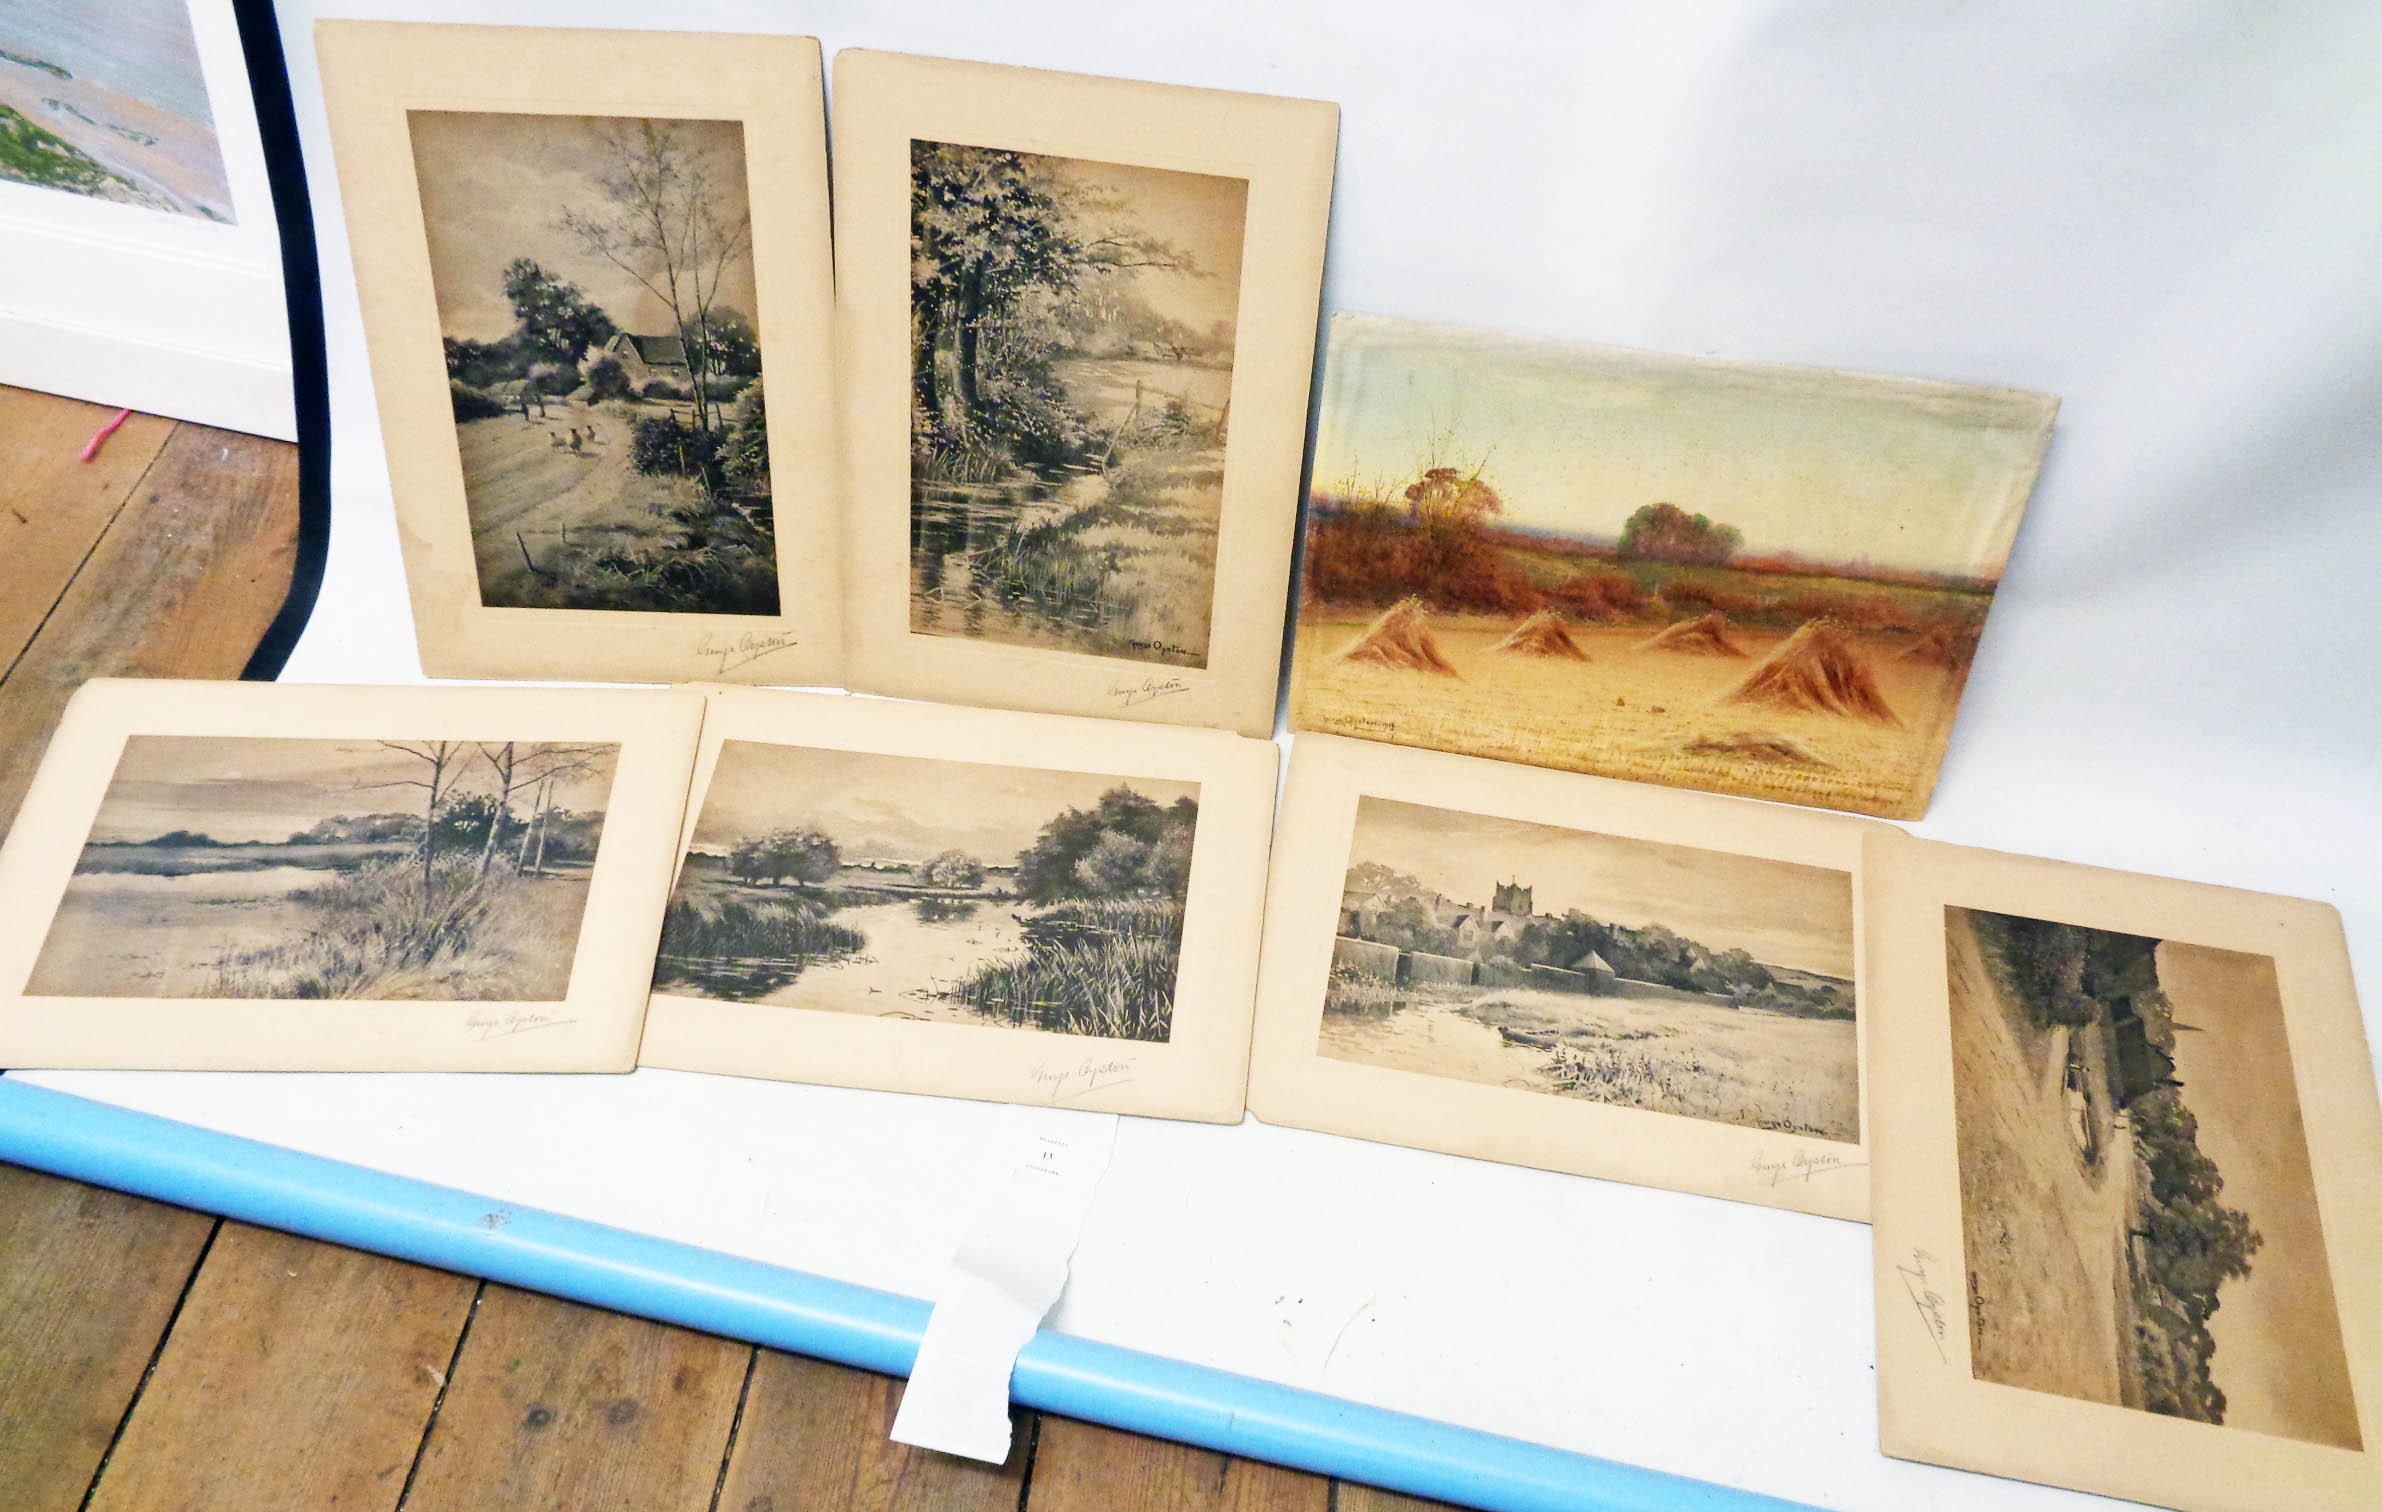 George Oyston: an unframed watercolour, depicting a harvest field - signed and dated 1913 - sold